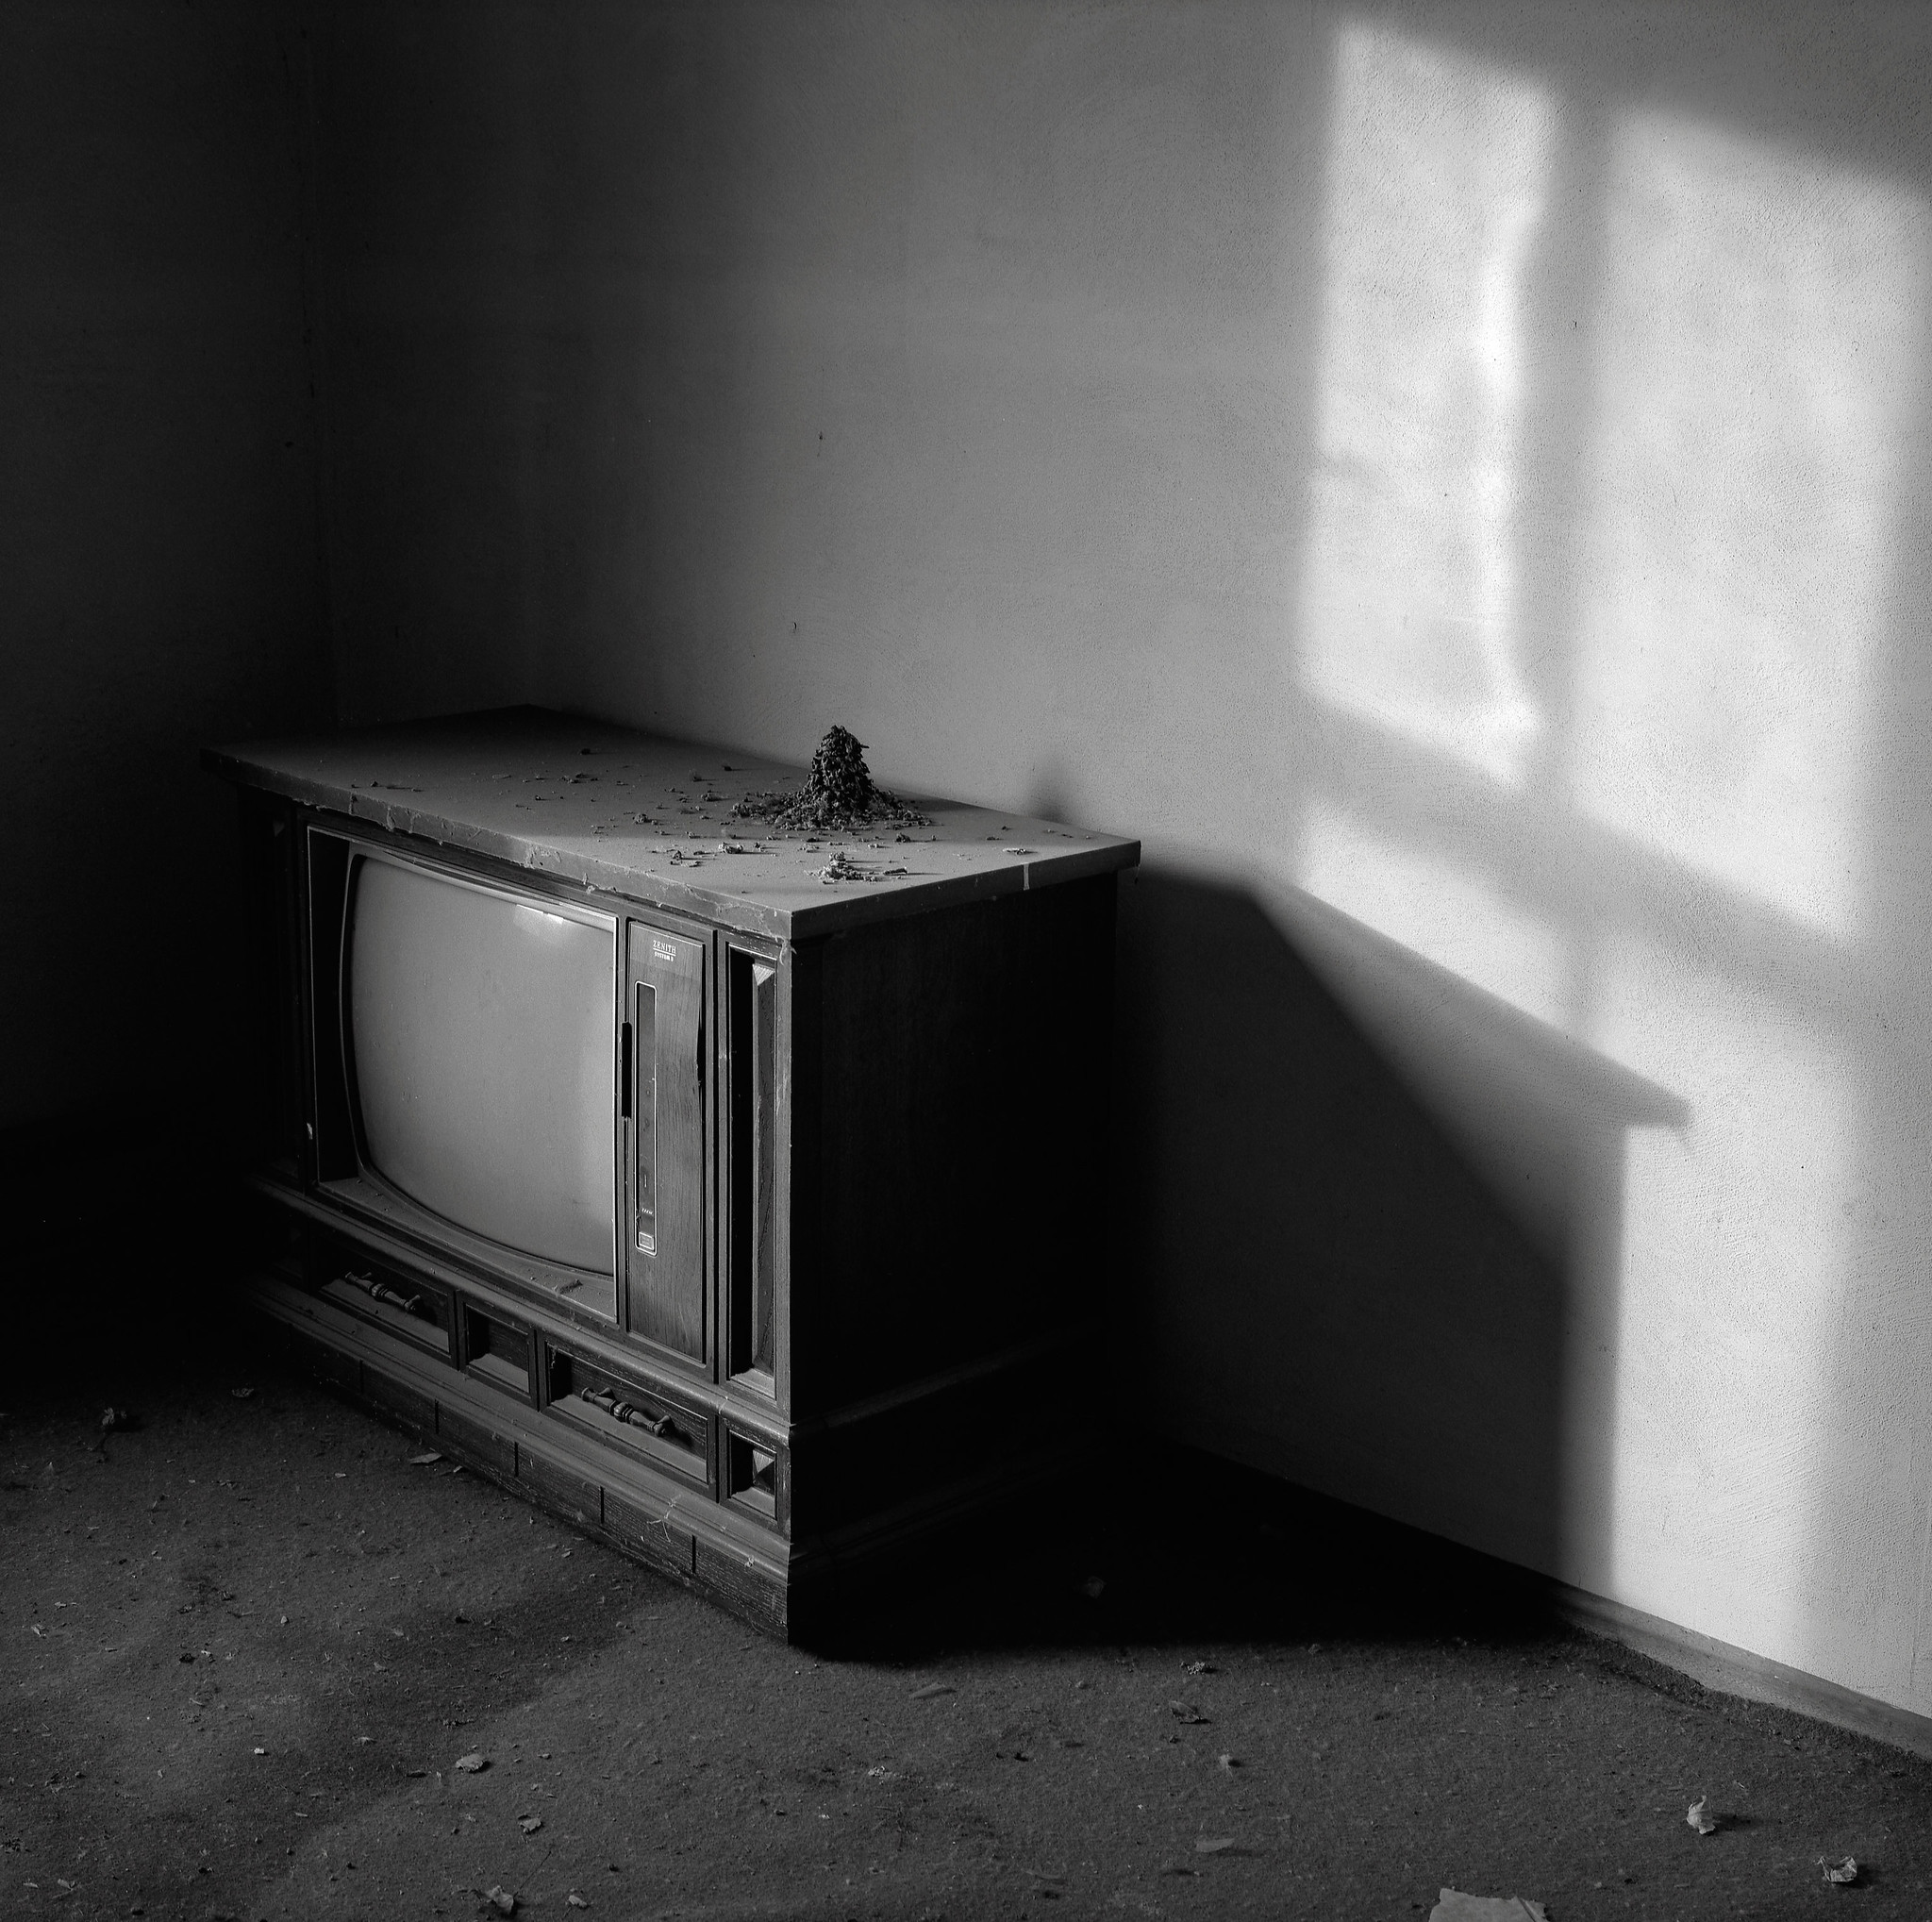 Television with Bird's Nest, Abandoned Farmhouse